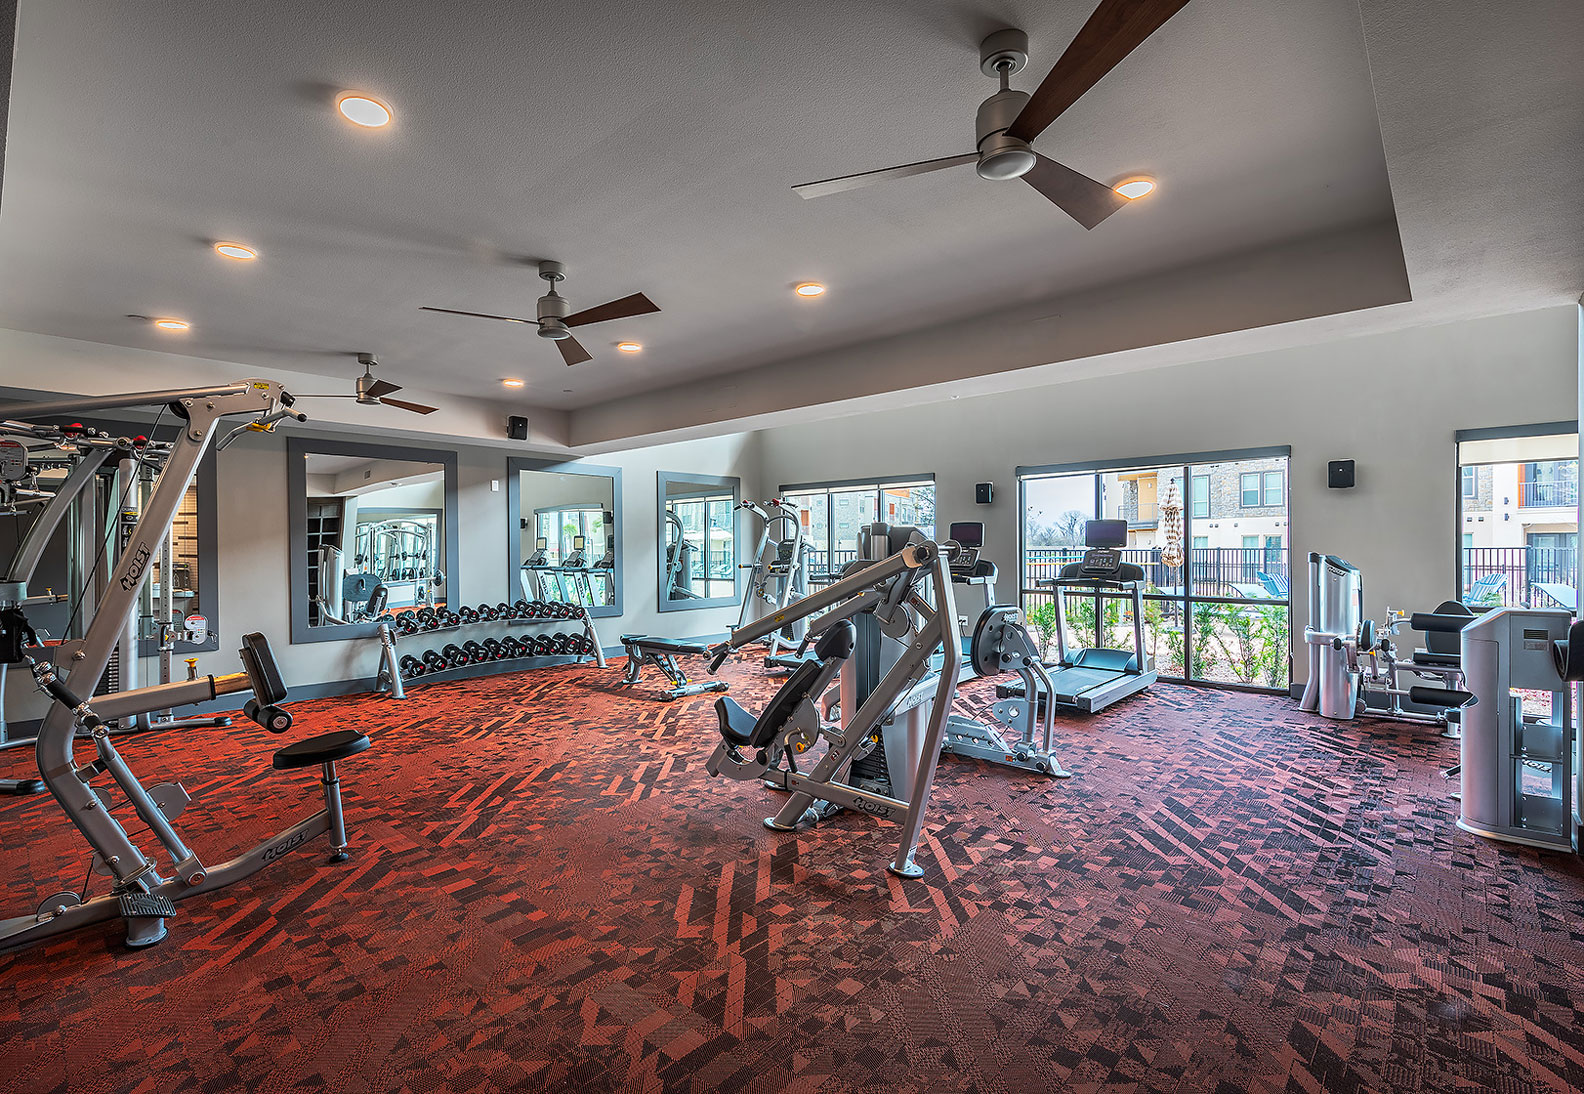 fitness center with free weights, weight machines, and ceiling fans